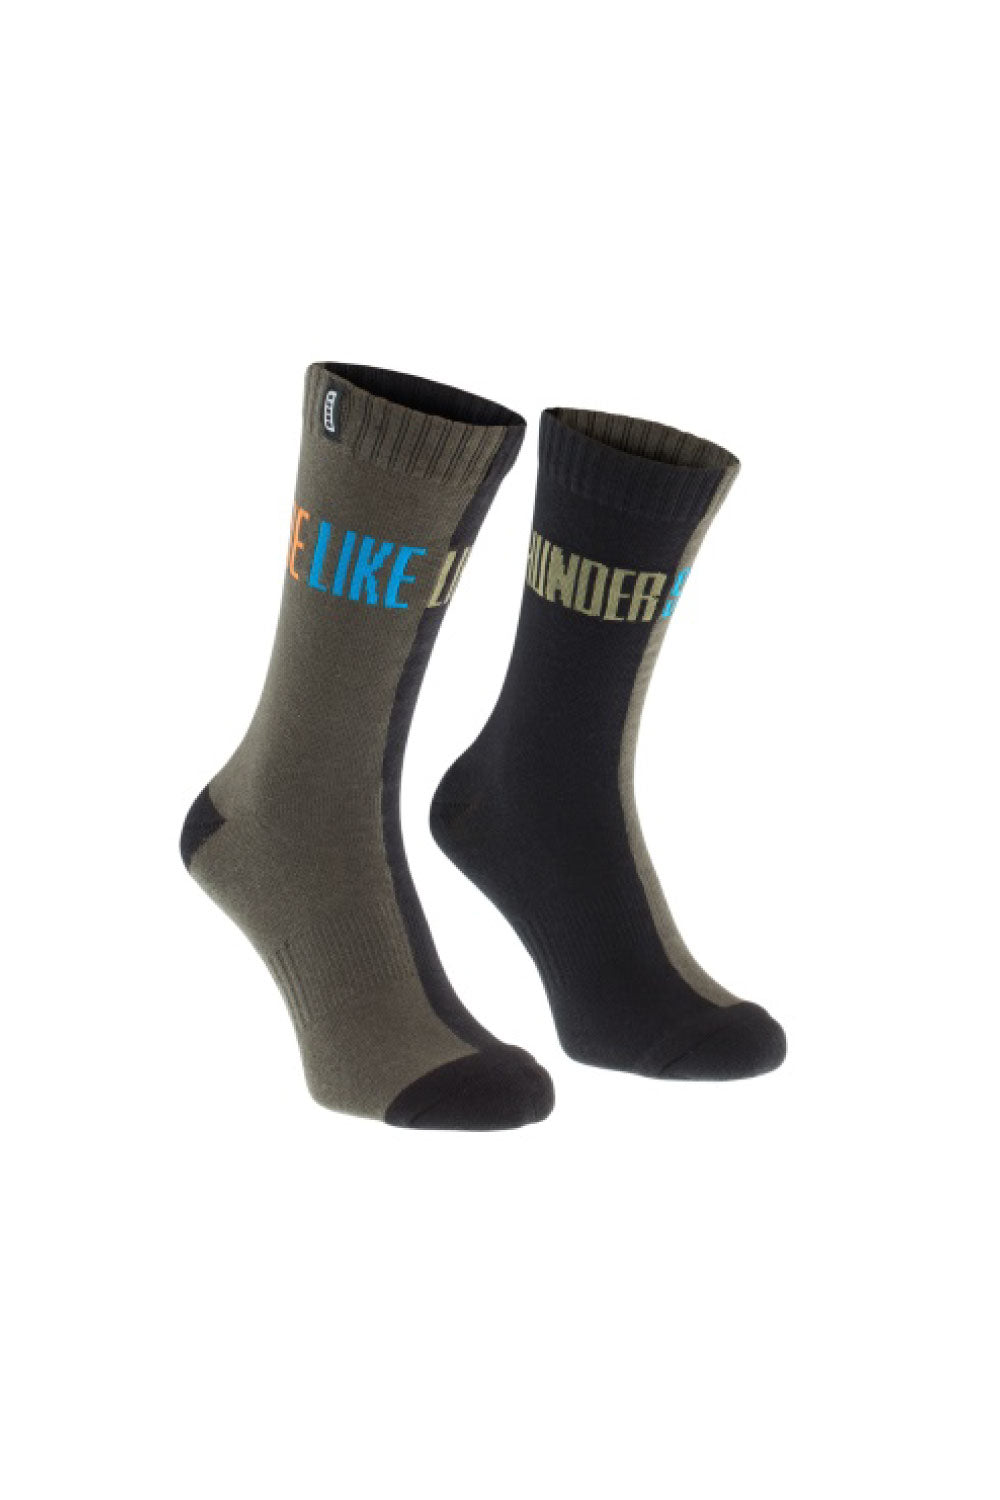 ION 2020 Scrub MTB Socks